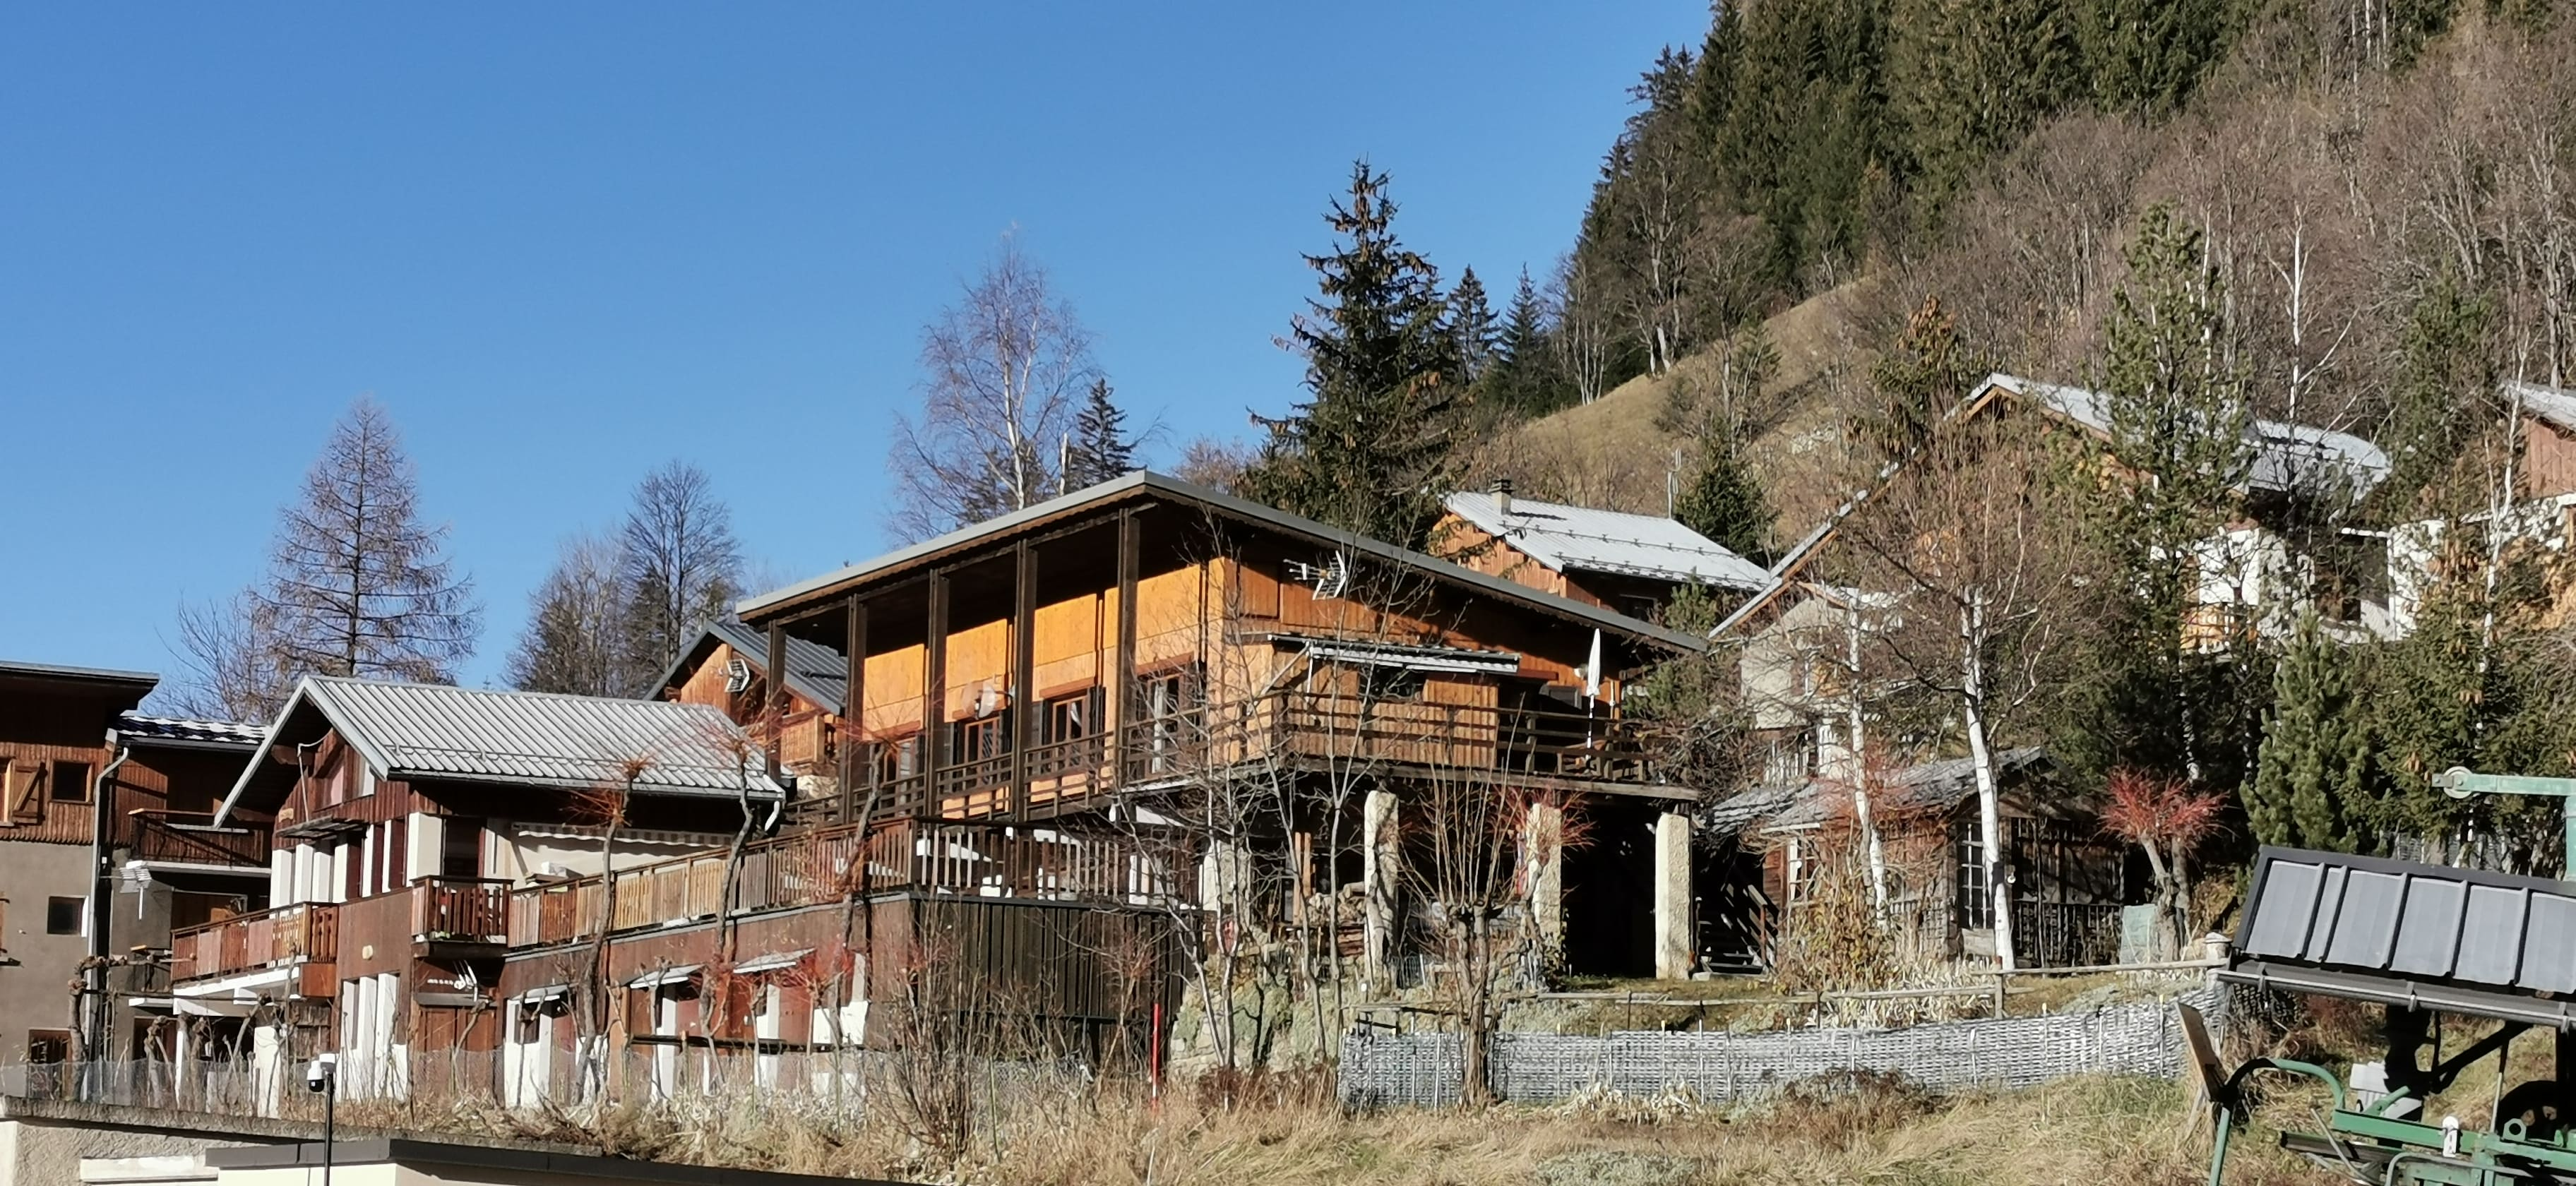 8 room chalet 200 m² ski in ski out